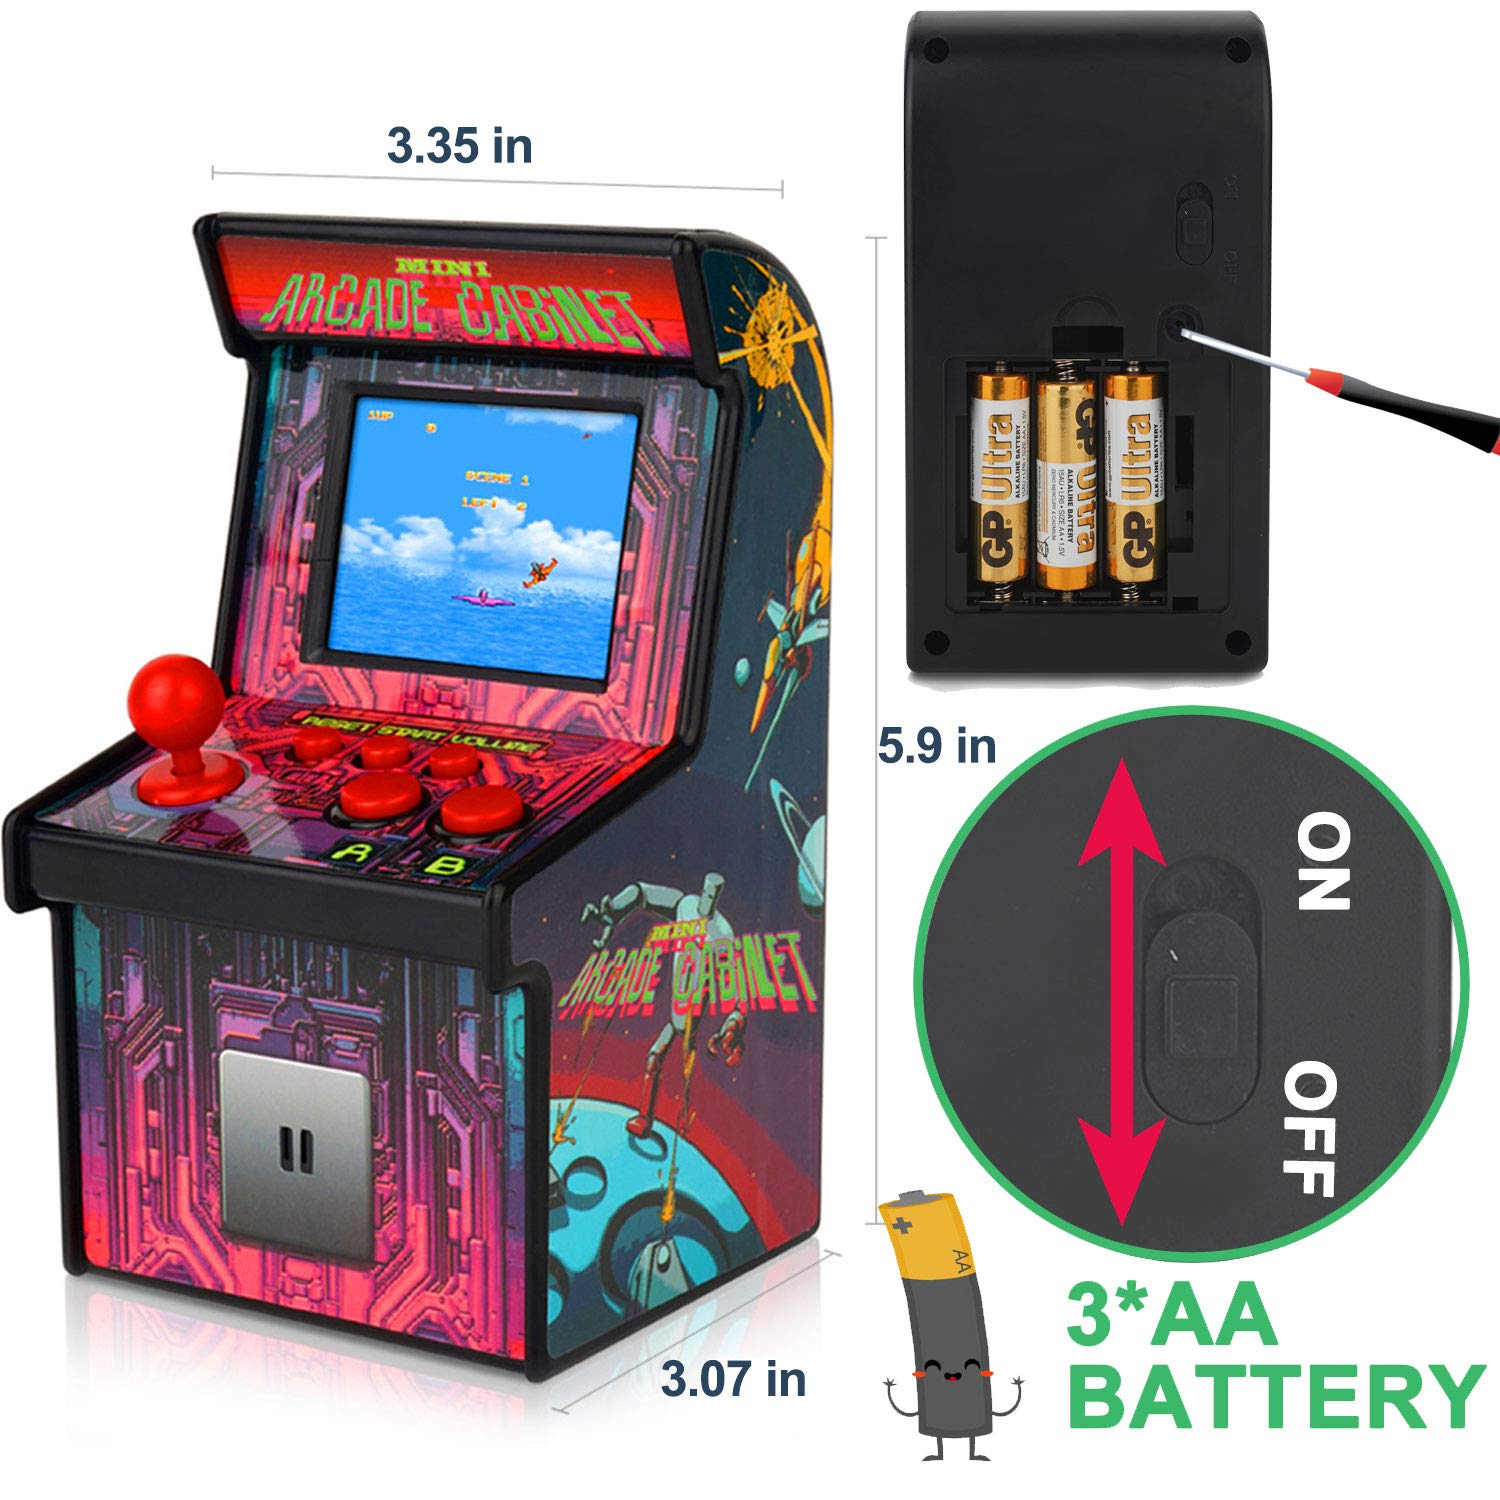 GBD Kids Mini Retro Arcade Game Cabinet Machine 200 Classic Handheld Video Games 2.5'' Display Joystick Travel Portable Game Player Kids Boys Girls Holiday Birthday Gifts Electronic Toys by GBD (Image #9)